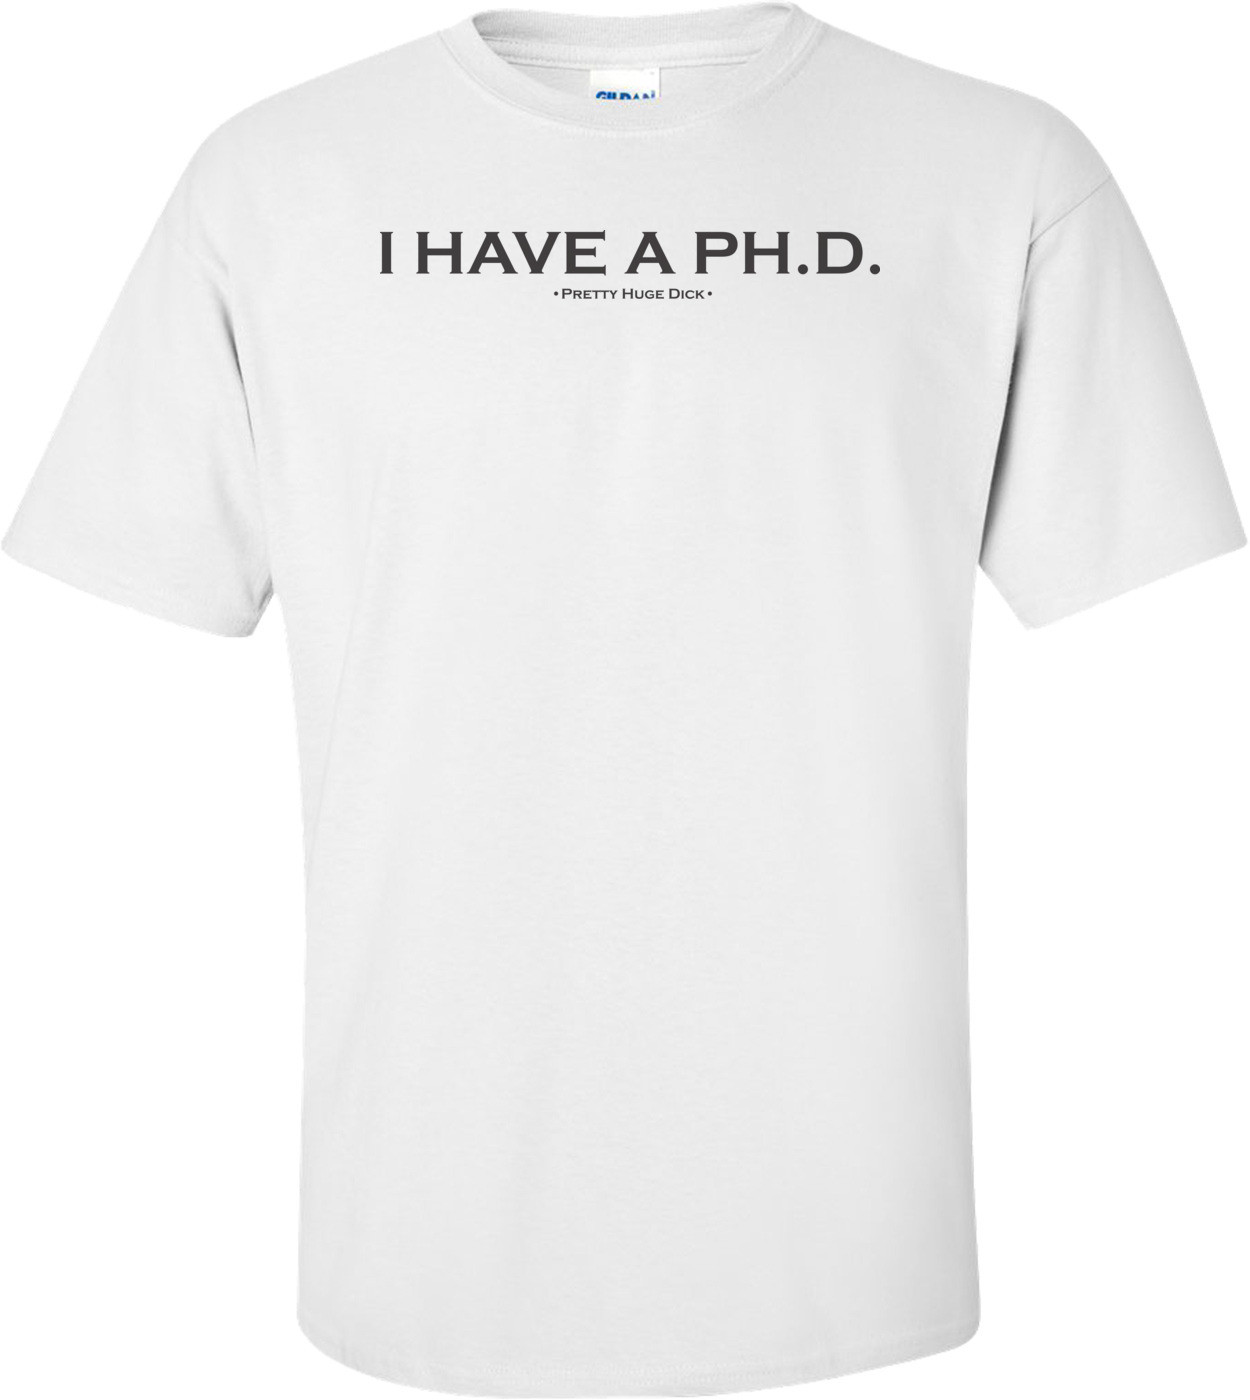 I Have A P.H.D. Pretty Huge Dick T-Shirt